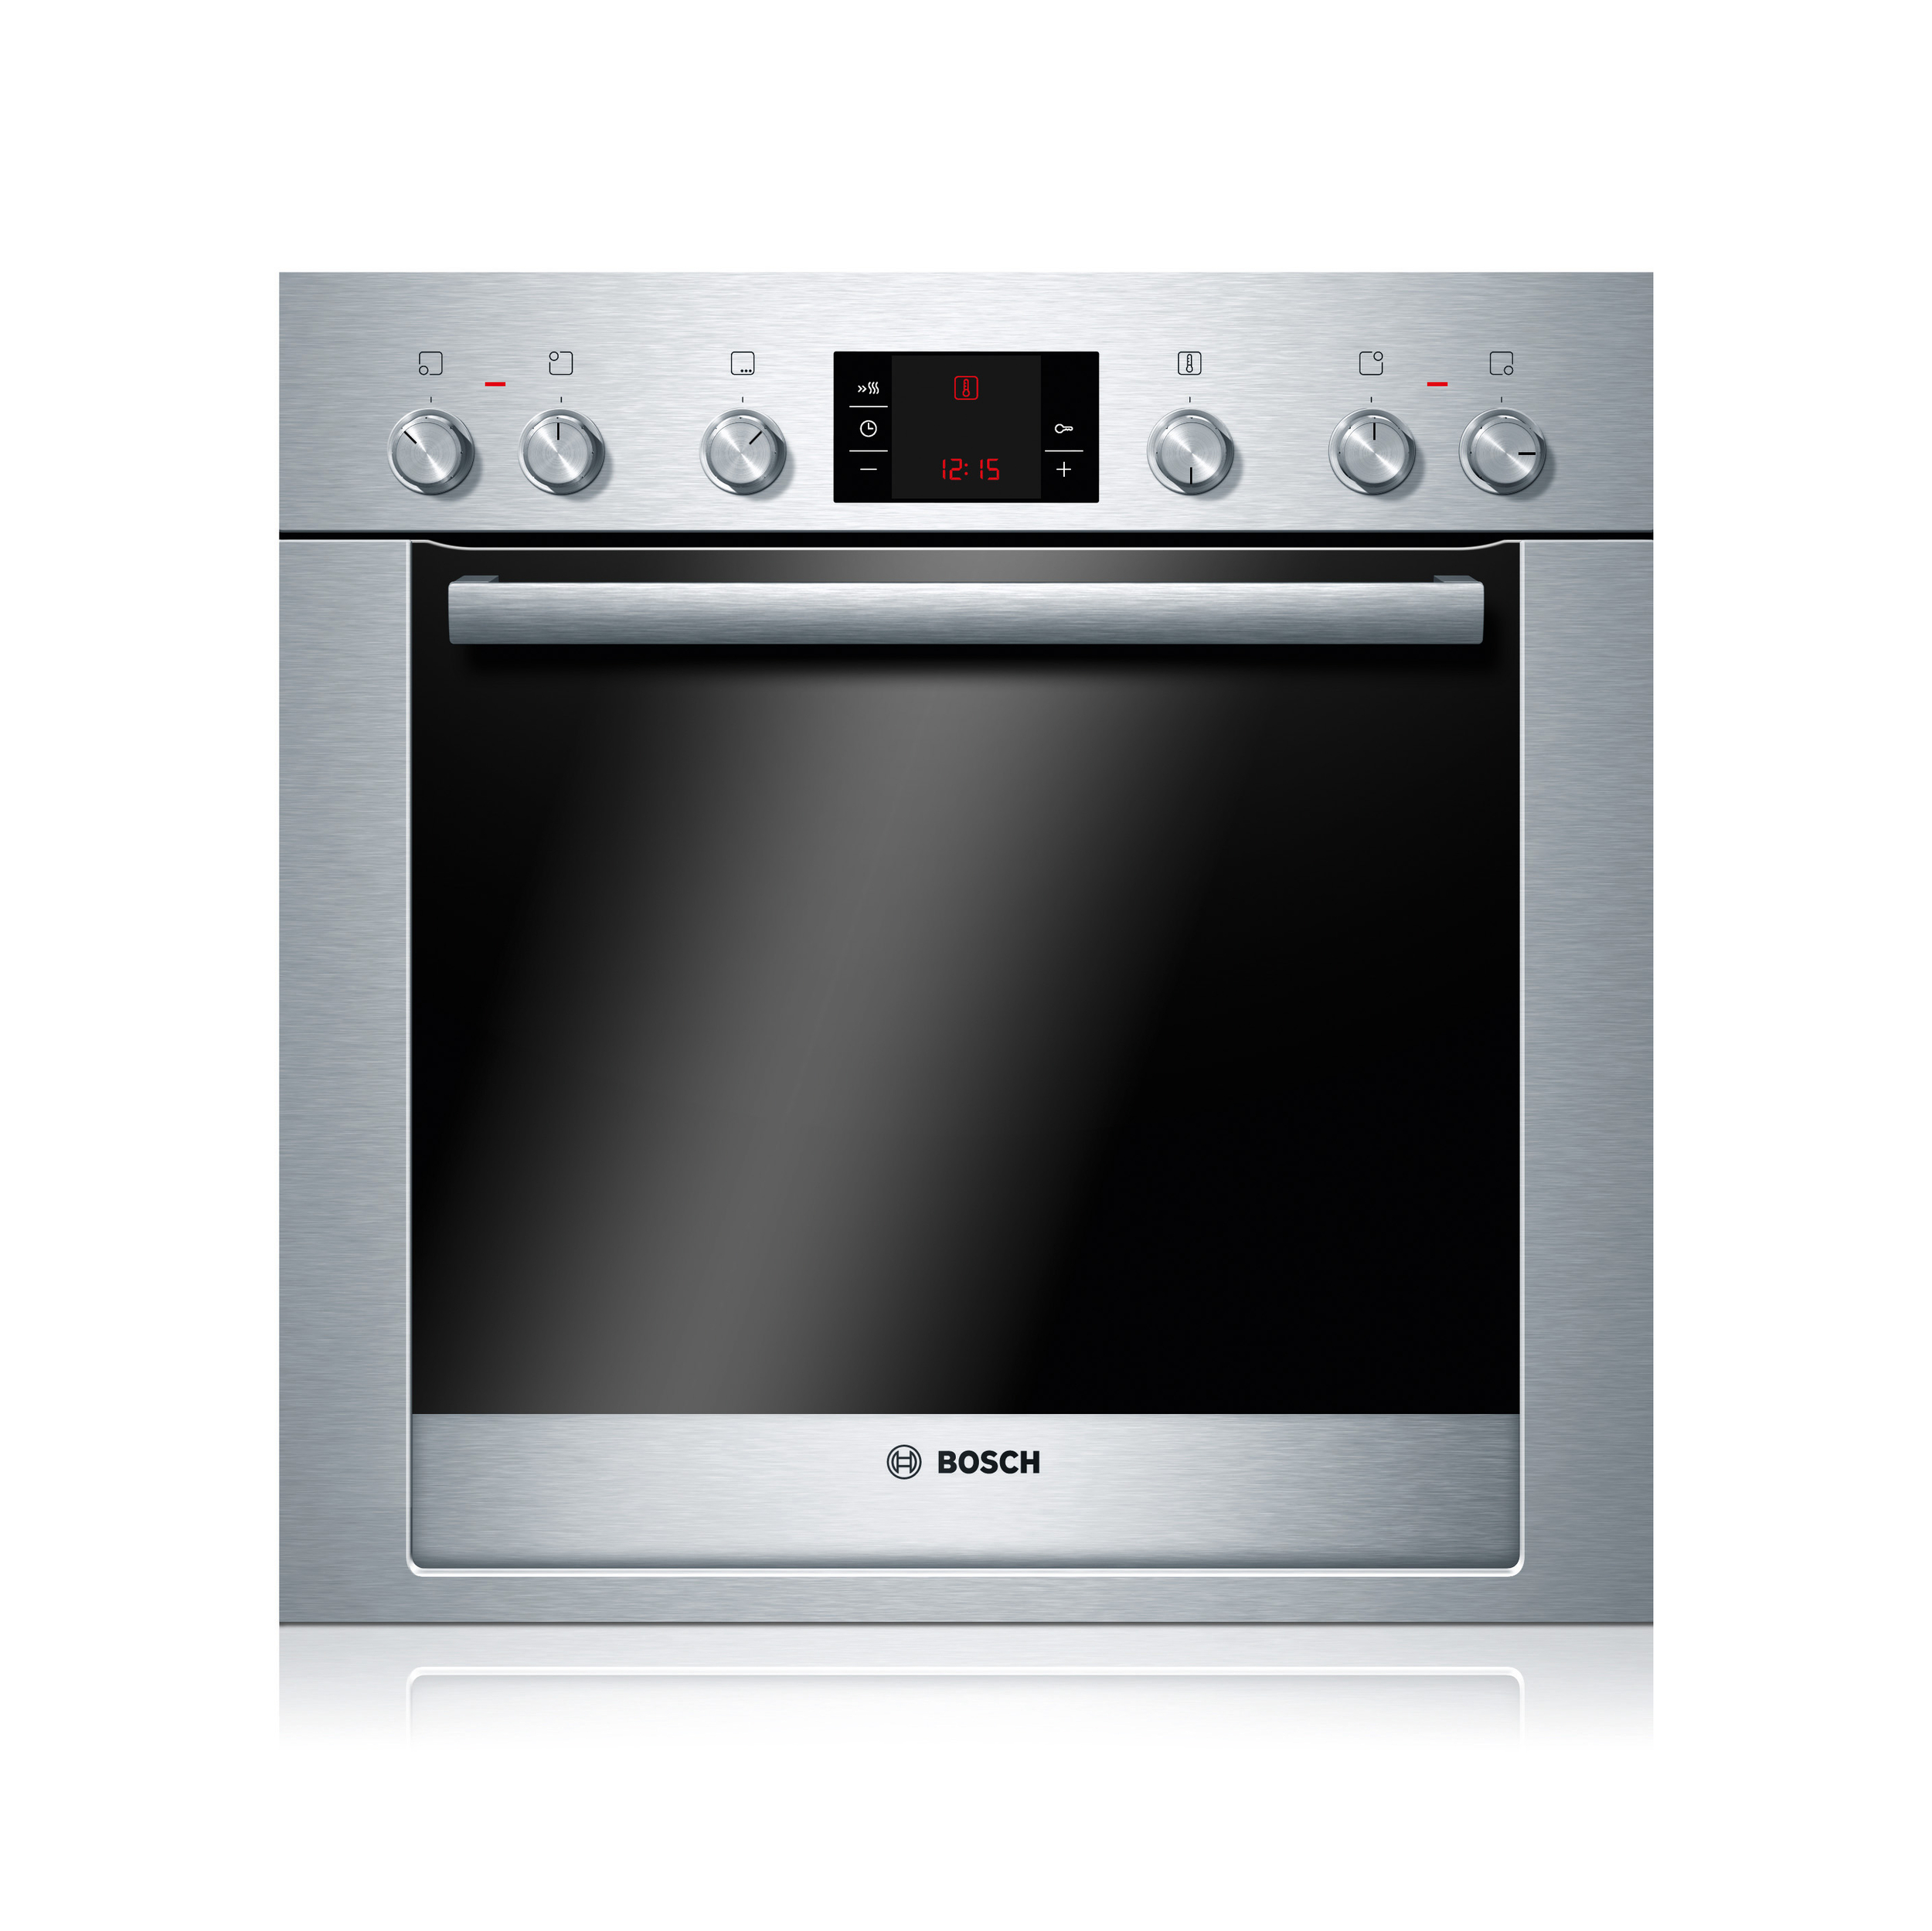 Духовой шкаф Bosch Real Brand Technics 29990.000